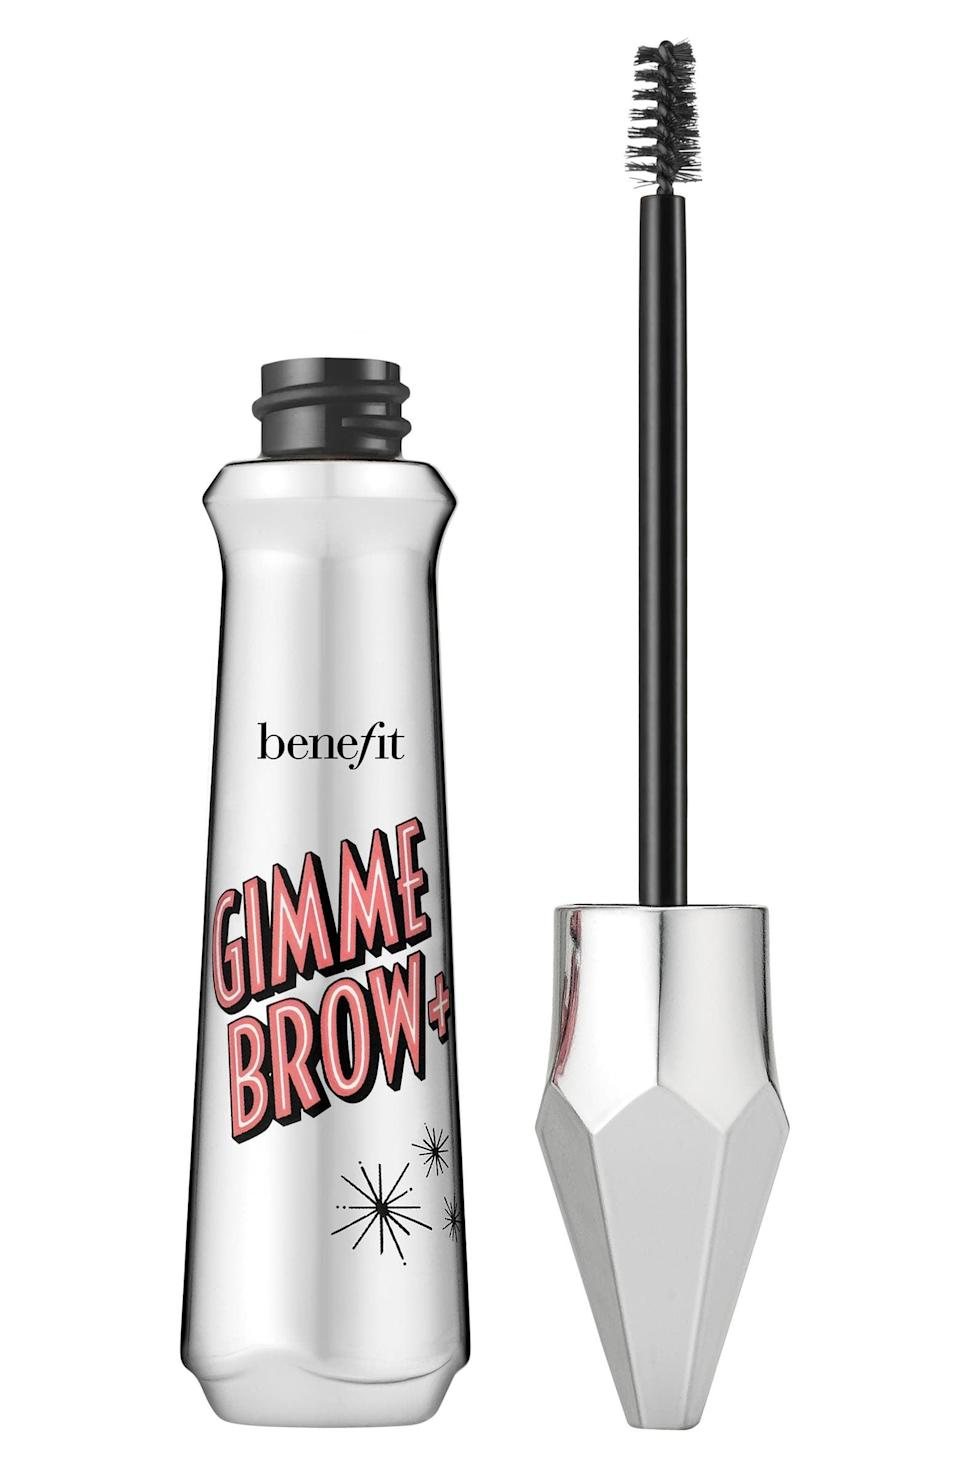 """<p><strong> The Product: </strong> <span>Benefit Gimme Brow+ Volumizing Eyebrow Gel</span> ($14–$38)</p> <p><strong> The Rating: </strong> 4.6 stars </p> <p><strong> Why Customers Love It: </strong> Benefit's Gimme Brow gave customers a fuller brow that is more natural. """"It's great to use to fill in the brow and give even color and texture for those days that you don't want to do a full brow makeover. Great for a natural brow look for everyday.""""</p>"""